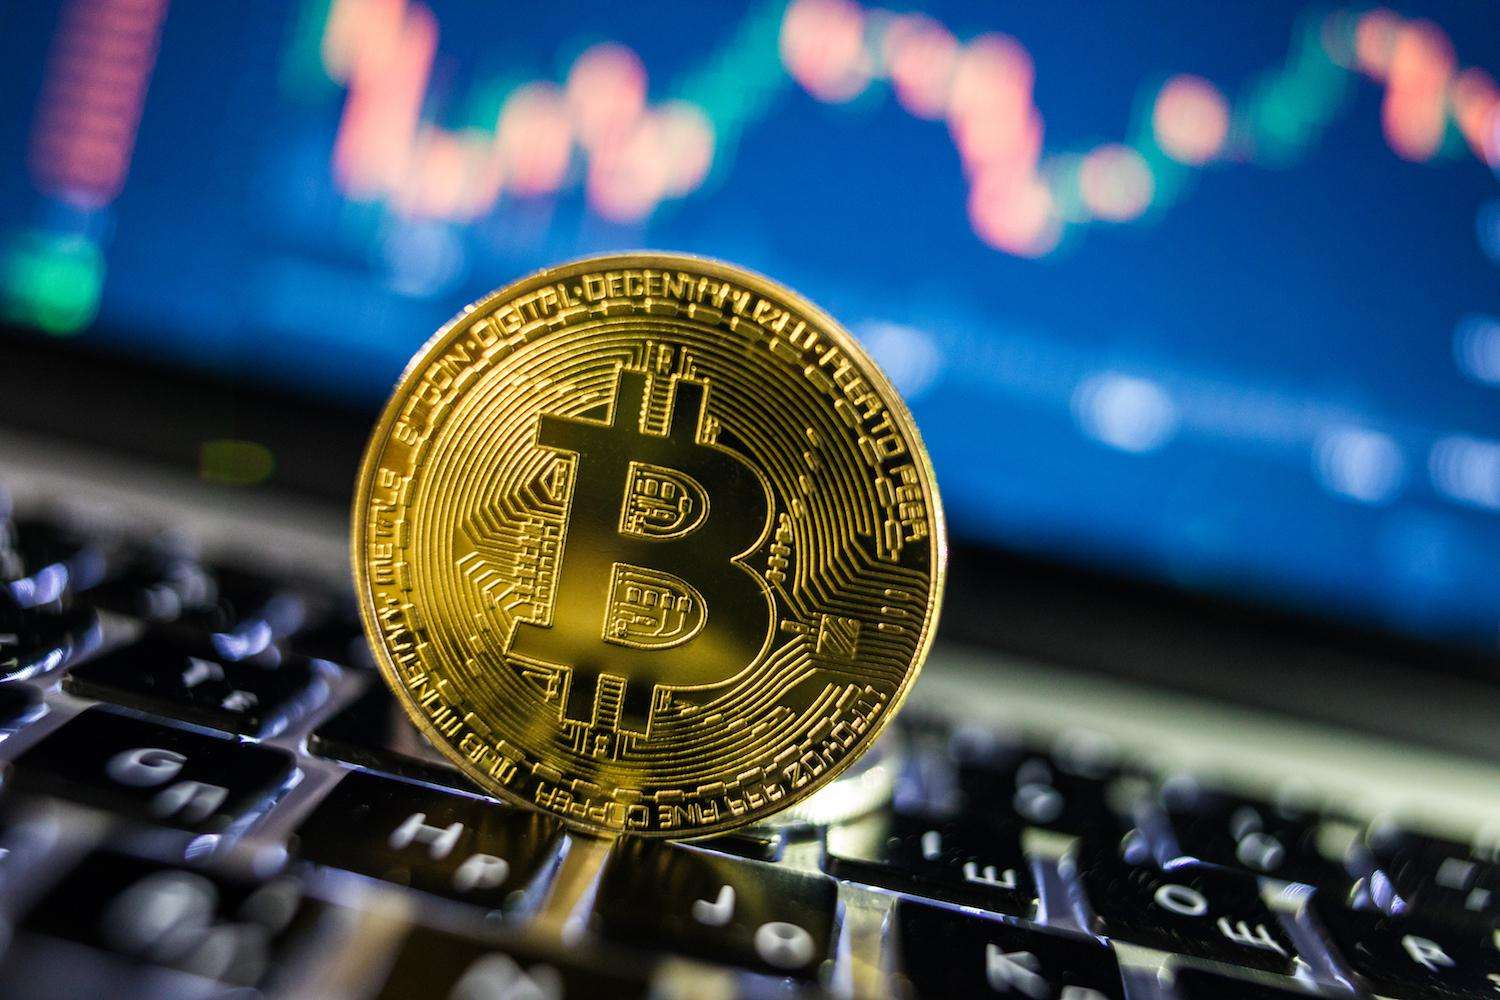 The old Zeng said currency: Bitcoin is rising strongly, will the market outlook completely reverse